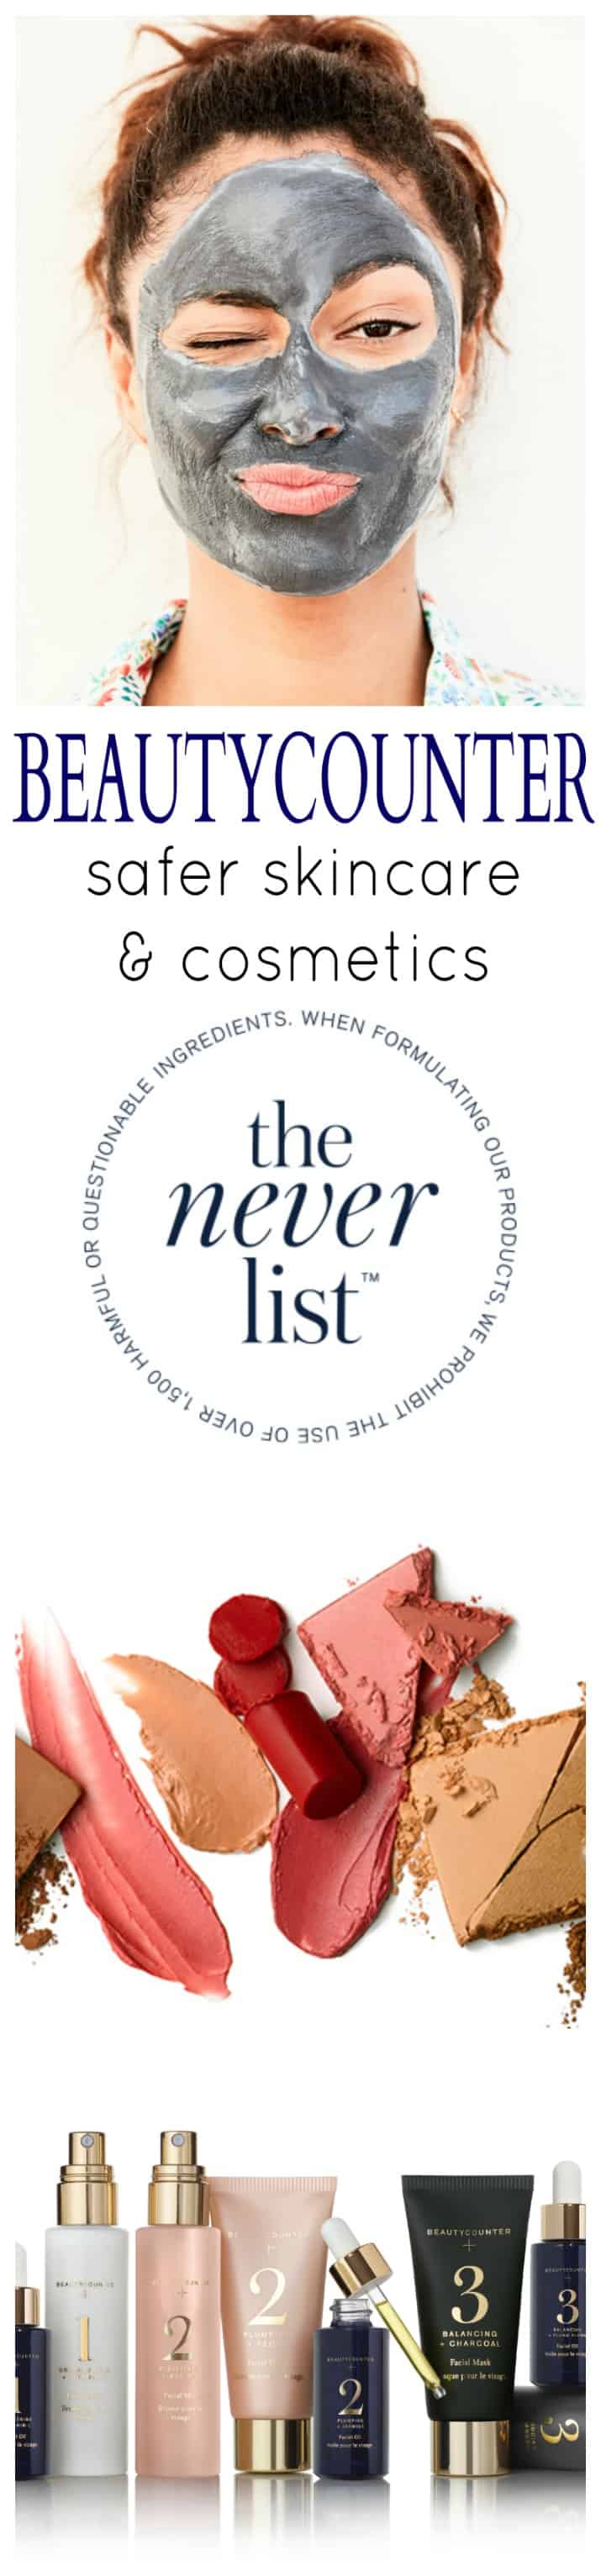 Beautycounter making the world healthier by providing safer effective skin care and cosmetics. Skin Care and Cosmetics you can trust that's used and supported by hundreds of celebrities. A list of 1,500 chemicals that will NEVER be used in any of the products! | joyfulhealthyeats.com